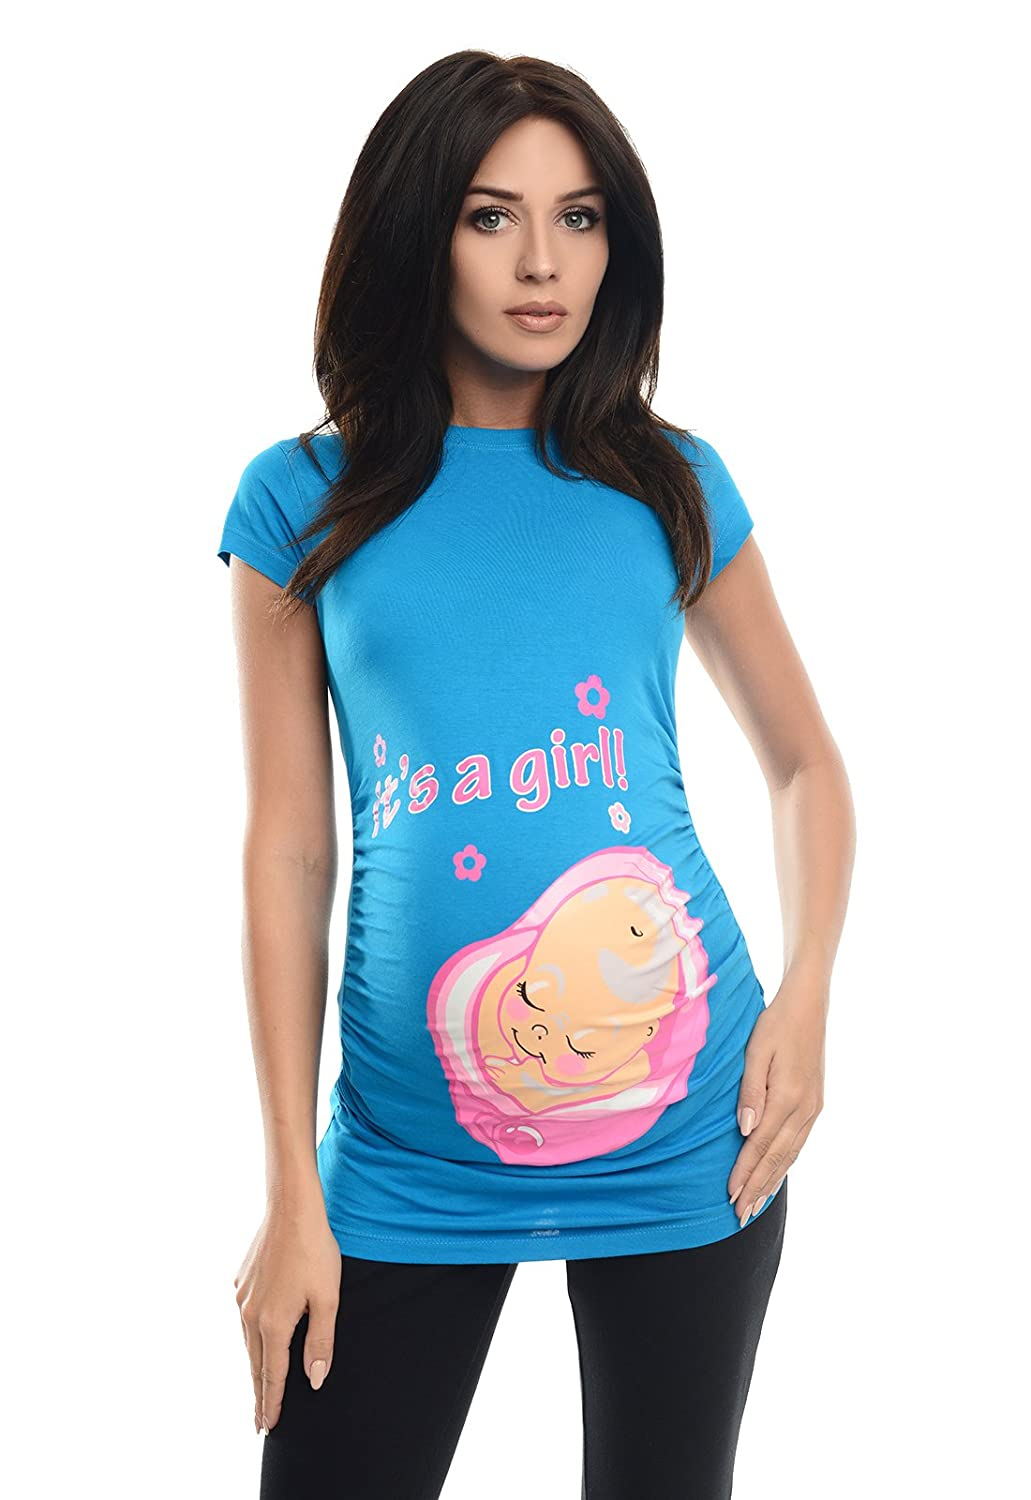 Purpless Maternity It's a Girl- Cotton Printed Maternity Pregnancy Top T-shirt 2001